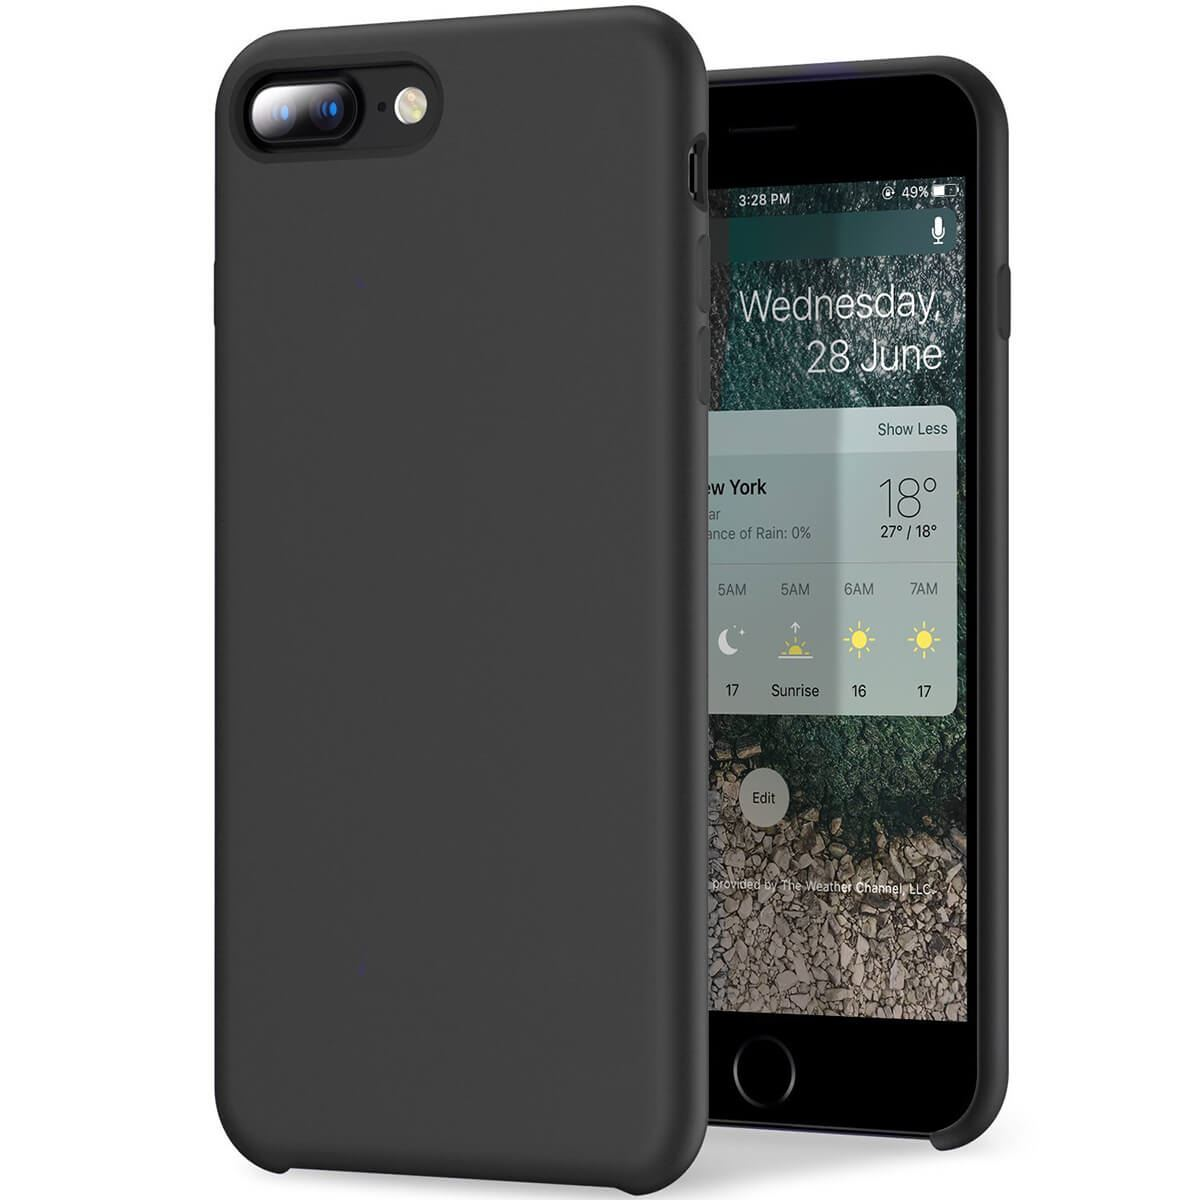 Liquid-Silicone-Phone-Case-For-Apple-iPhone-Soft-Shockproof-Matte-Back-Cover thumbnail 5